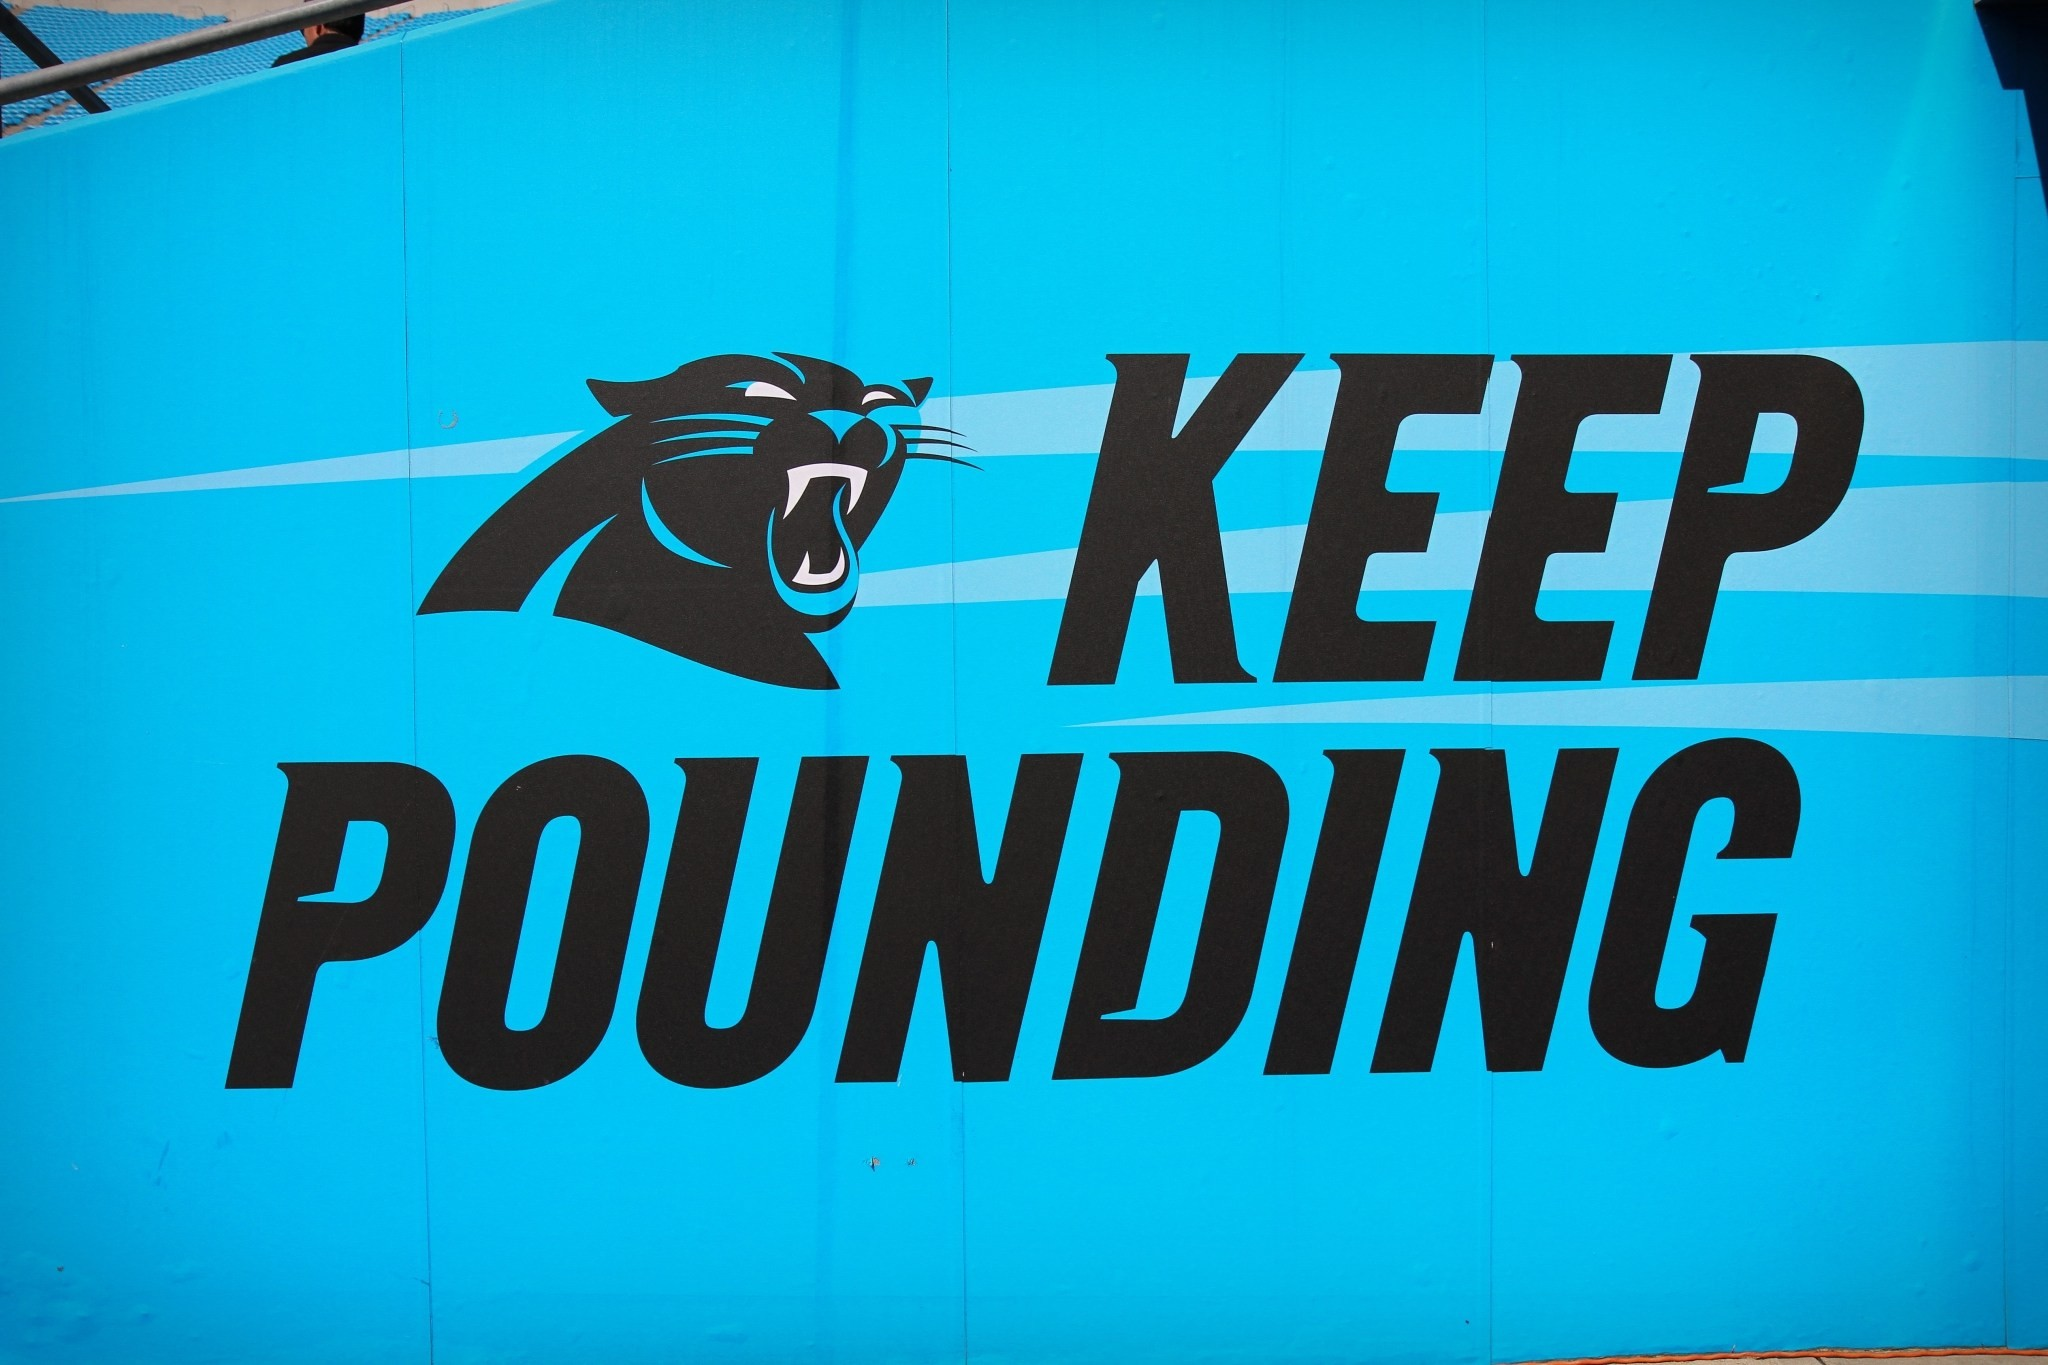 Carolina Panthers Wallpaper Background 70 Images